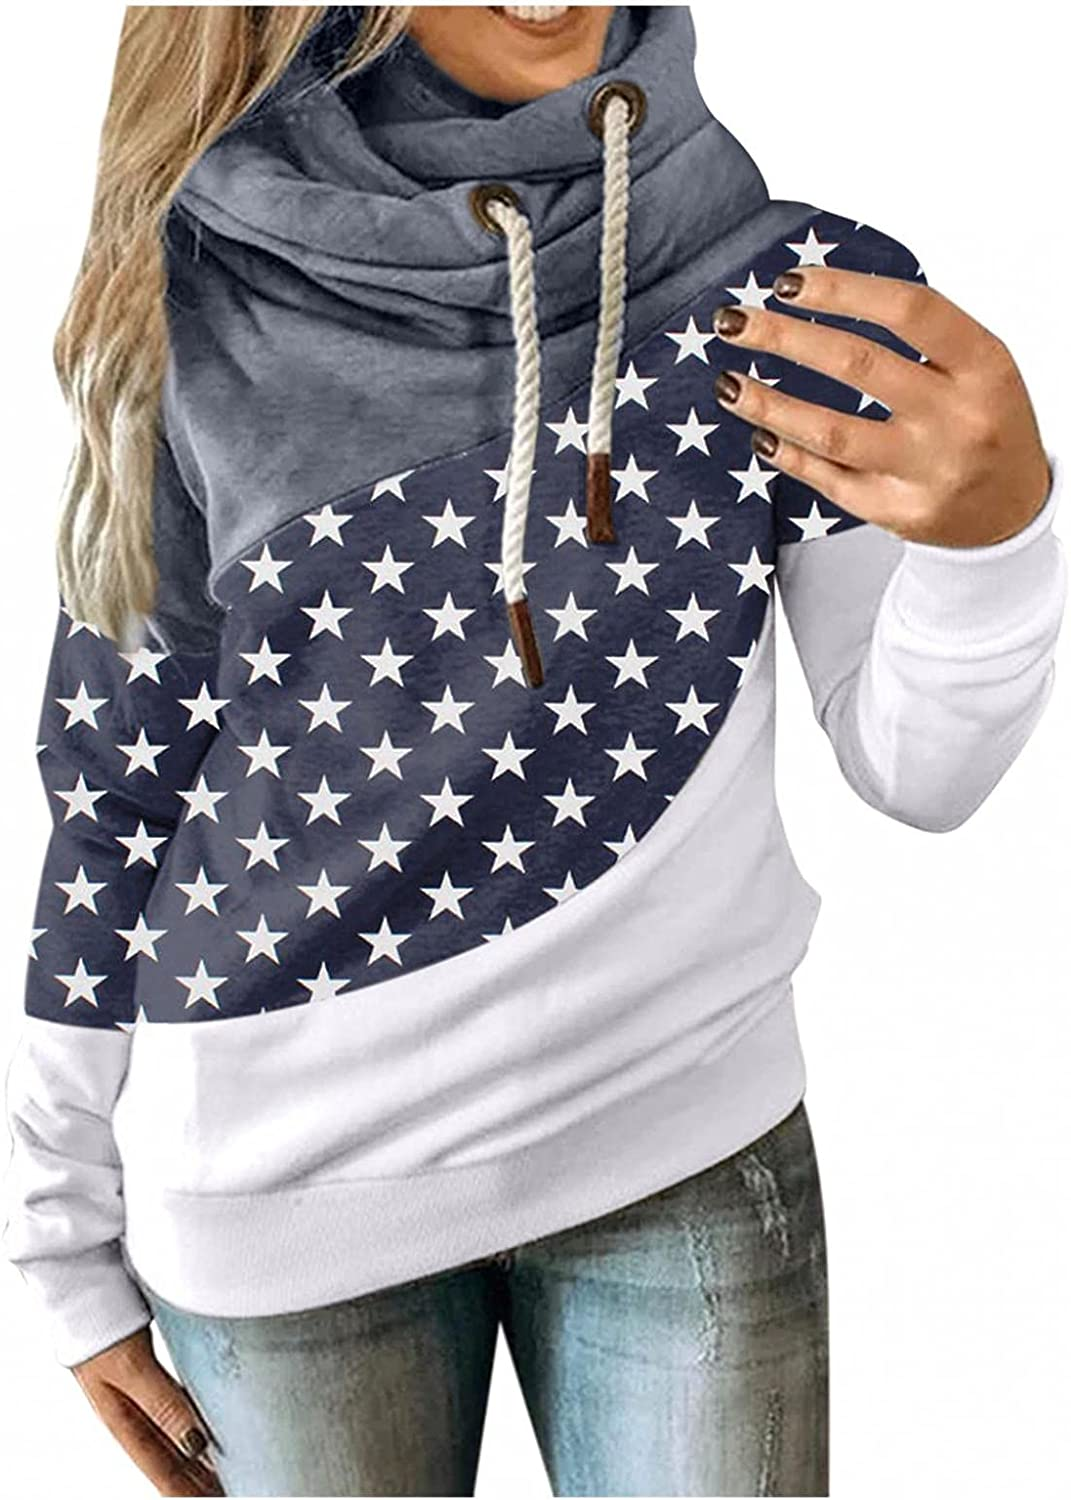 Hoodies for Women Pullover Plus Size Sweatshirts Color Block Graphic Print Winter Blouse Long Sleeve Pullover Tops